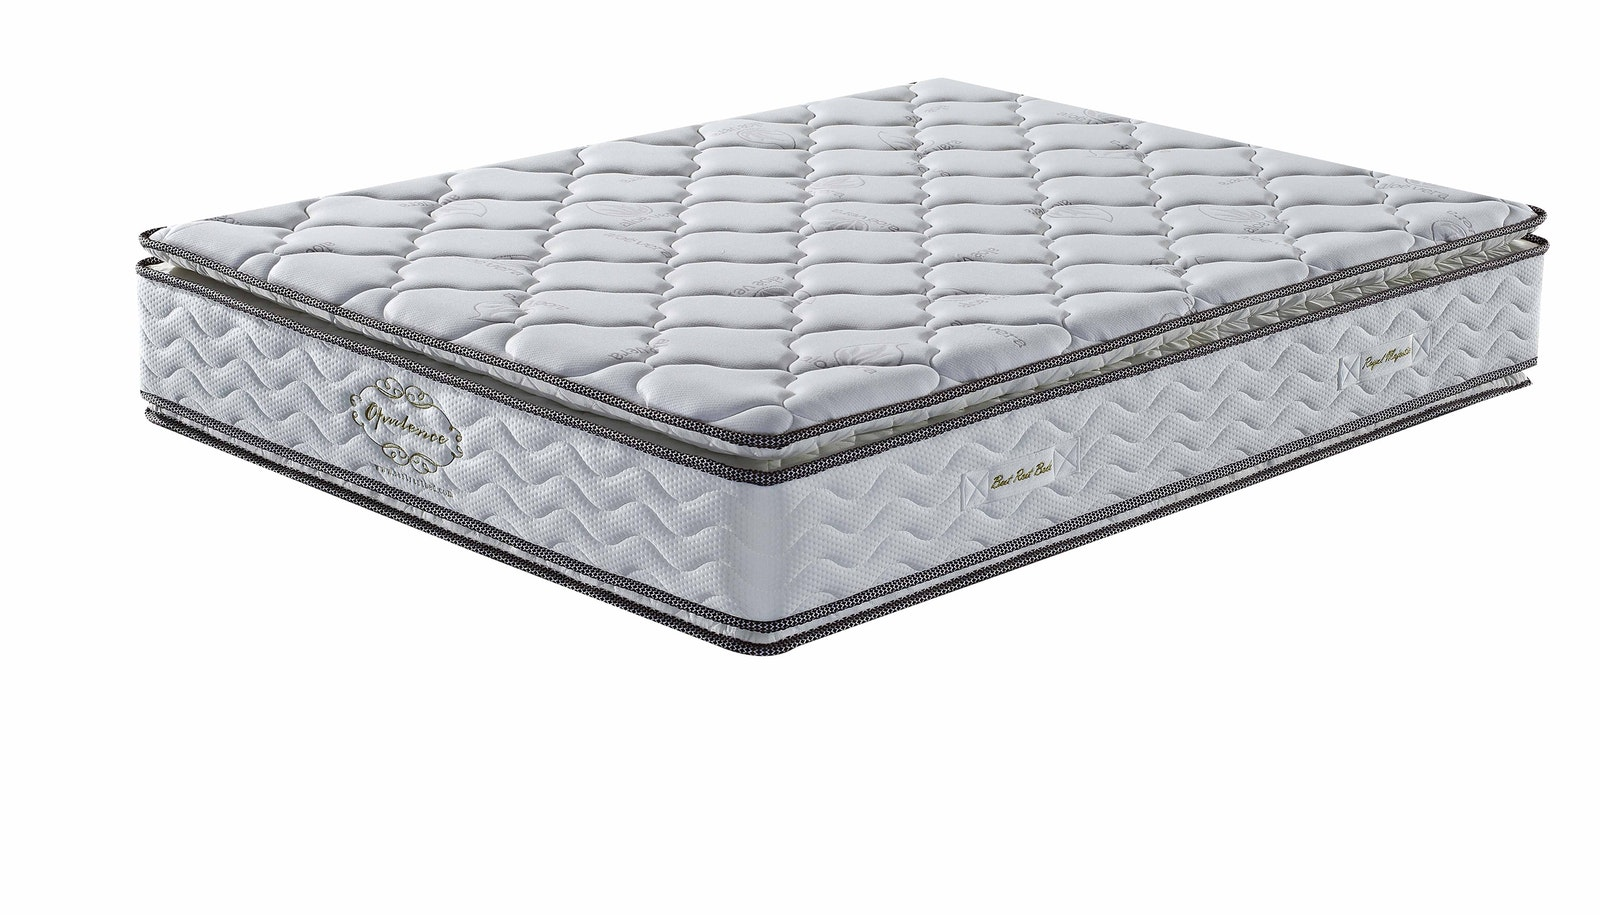 Queen mattress for sale townsville queen size mattress sale unique pics of queen size mattress Queen mattress sale